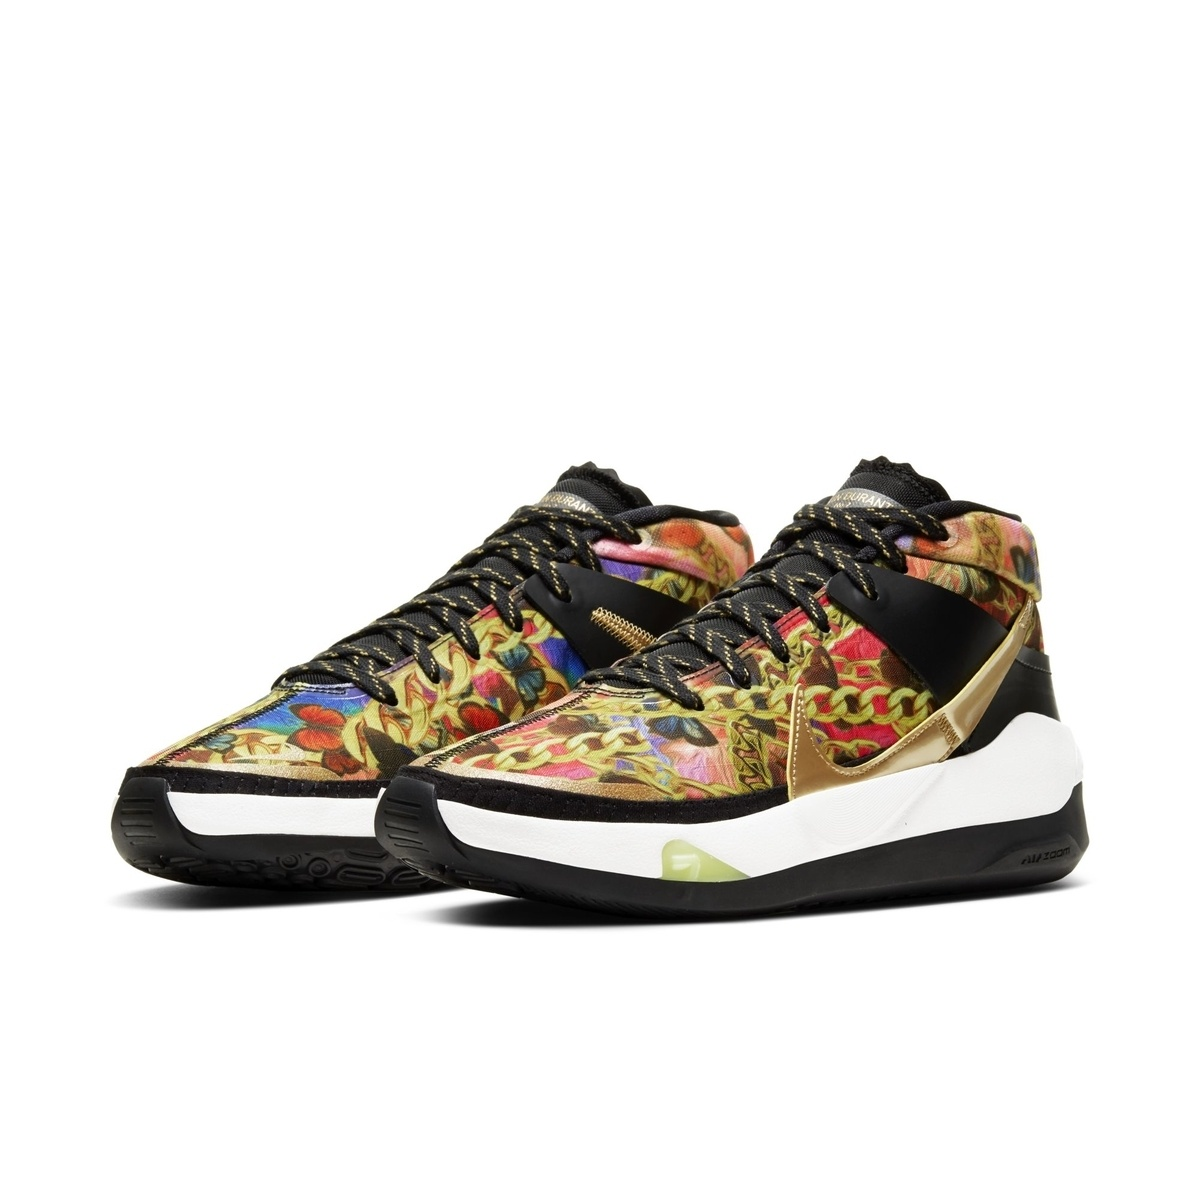 Nike Kevin Durant 13 Versace